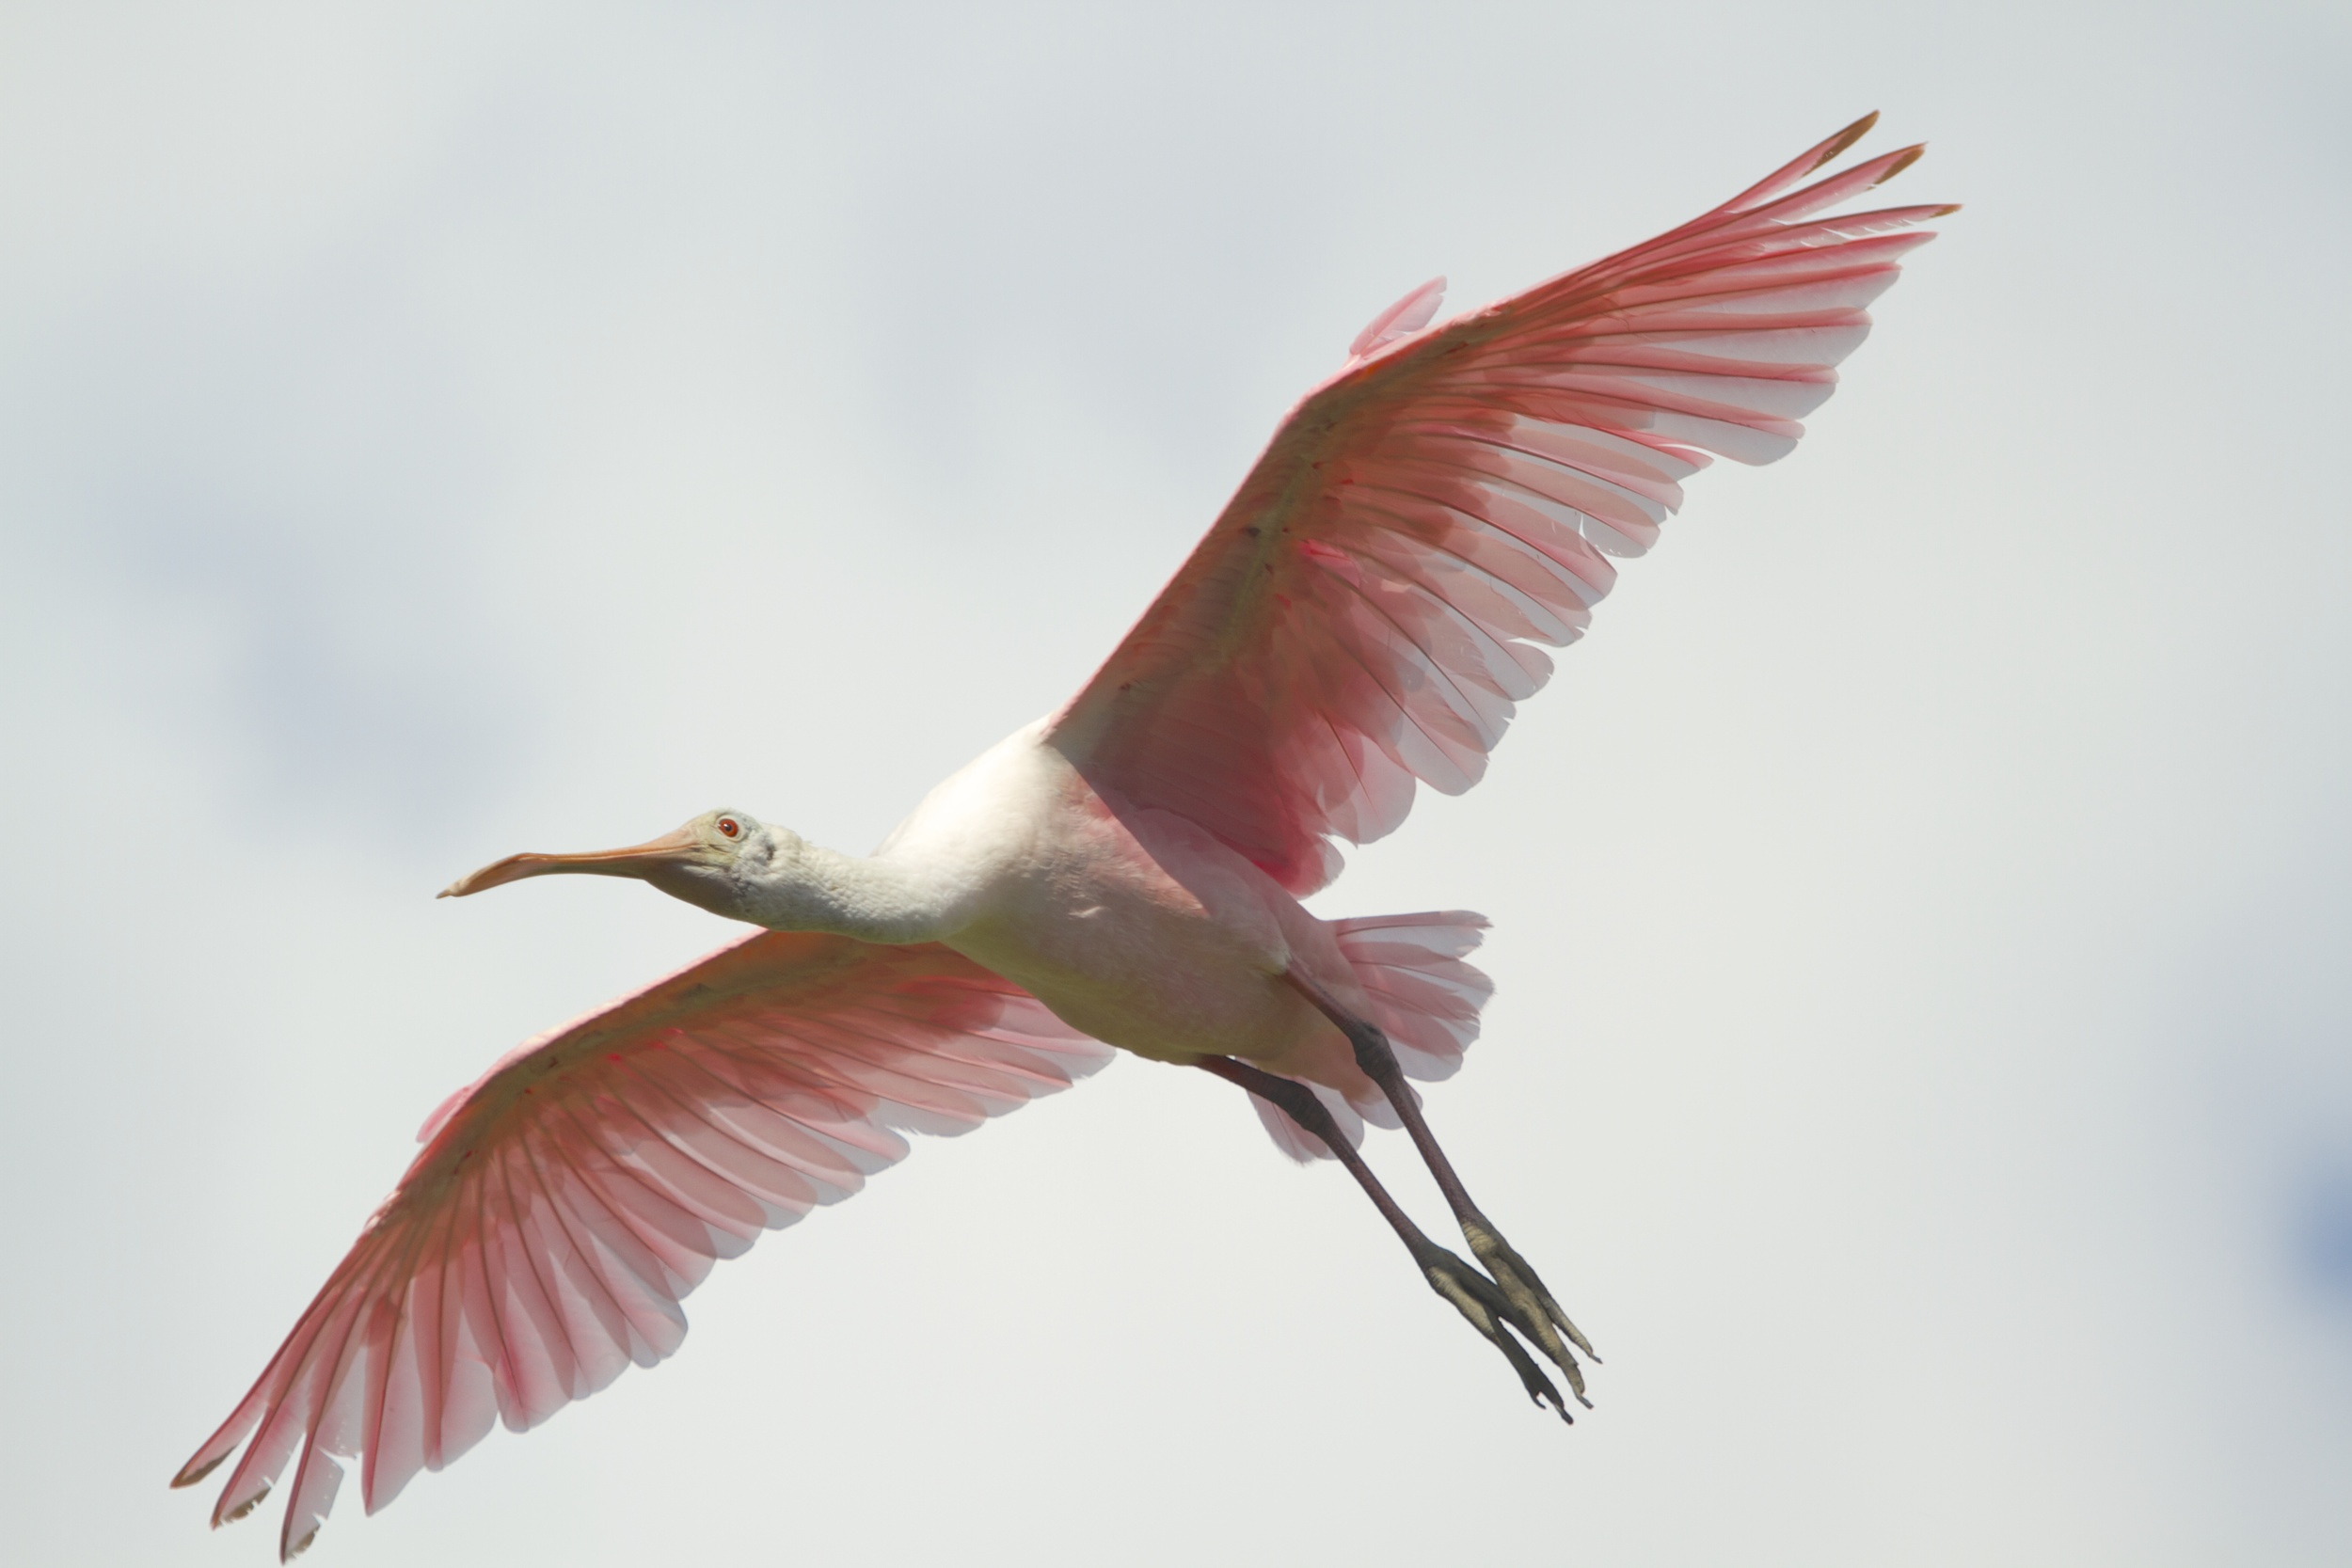 Translucent pink wings fill the sky.